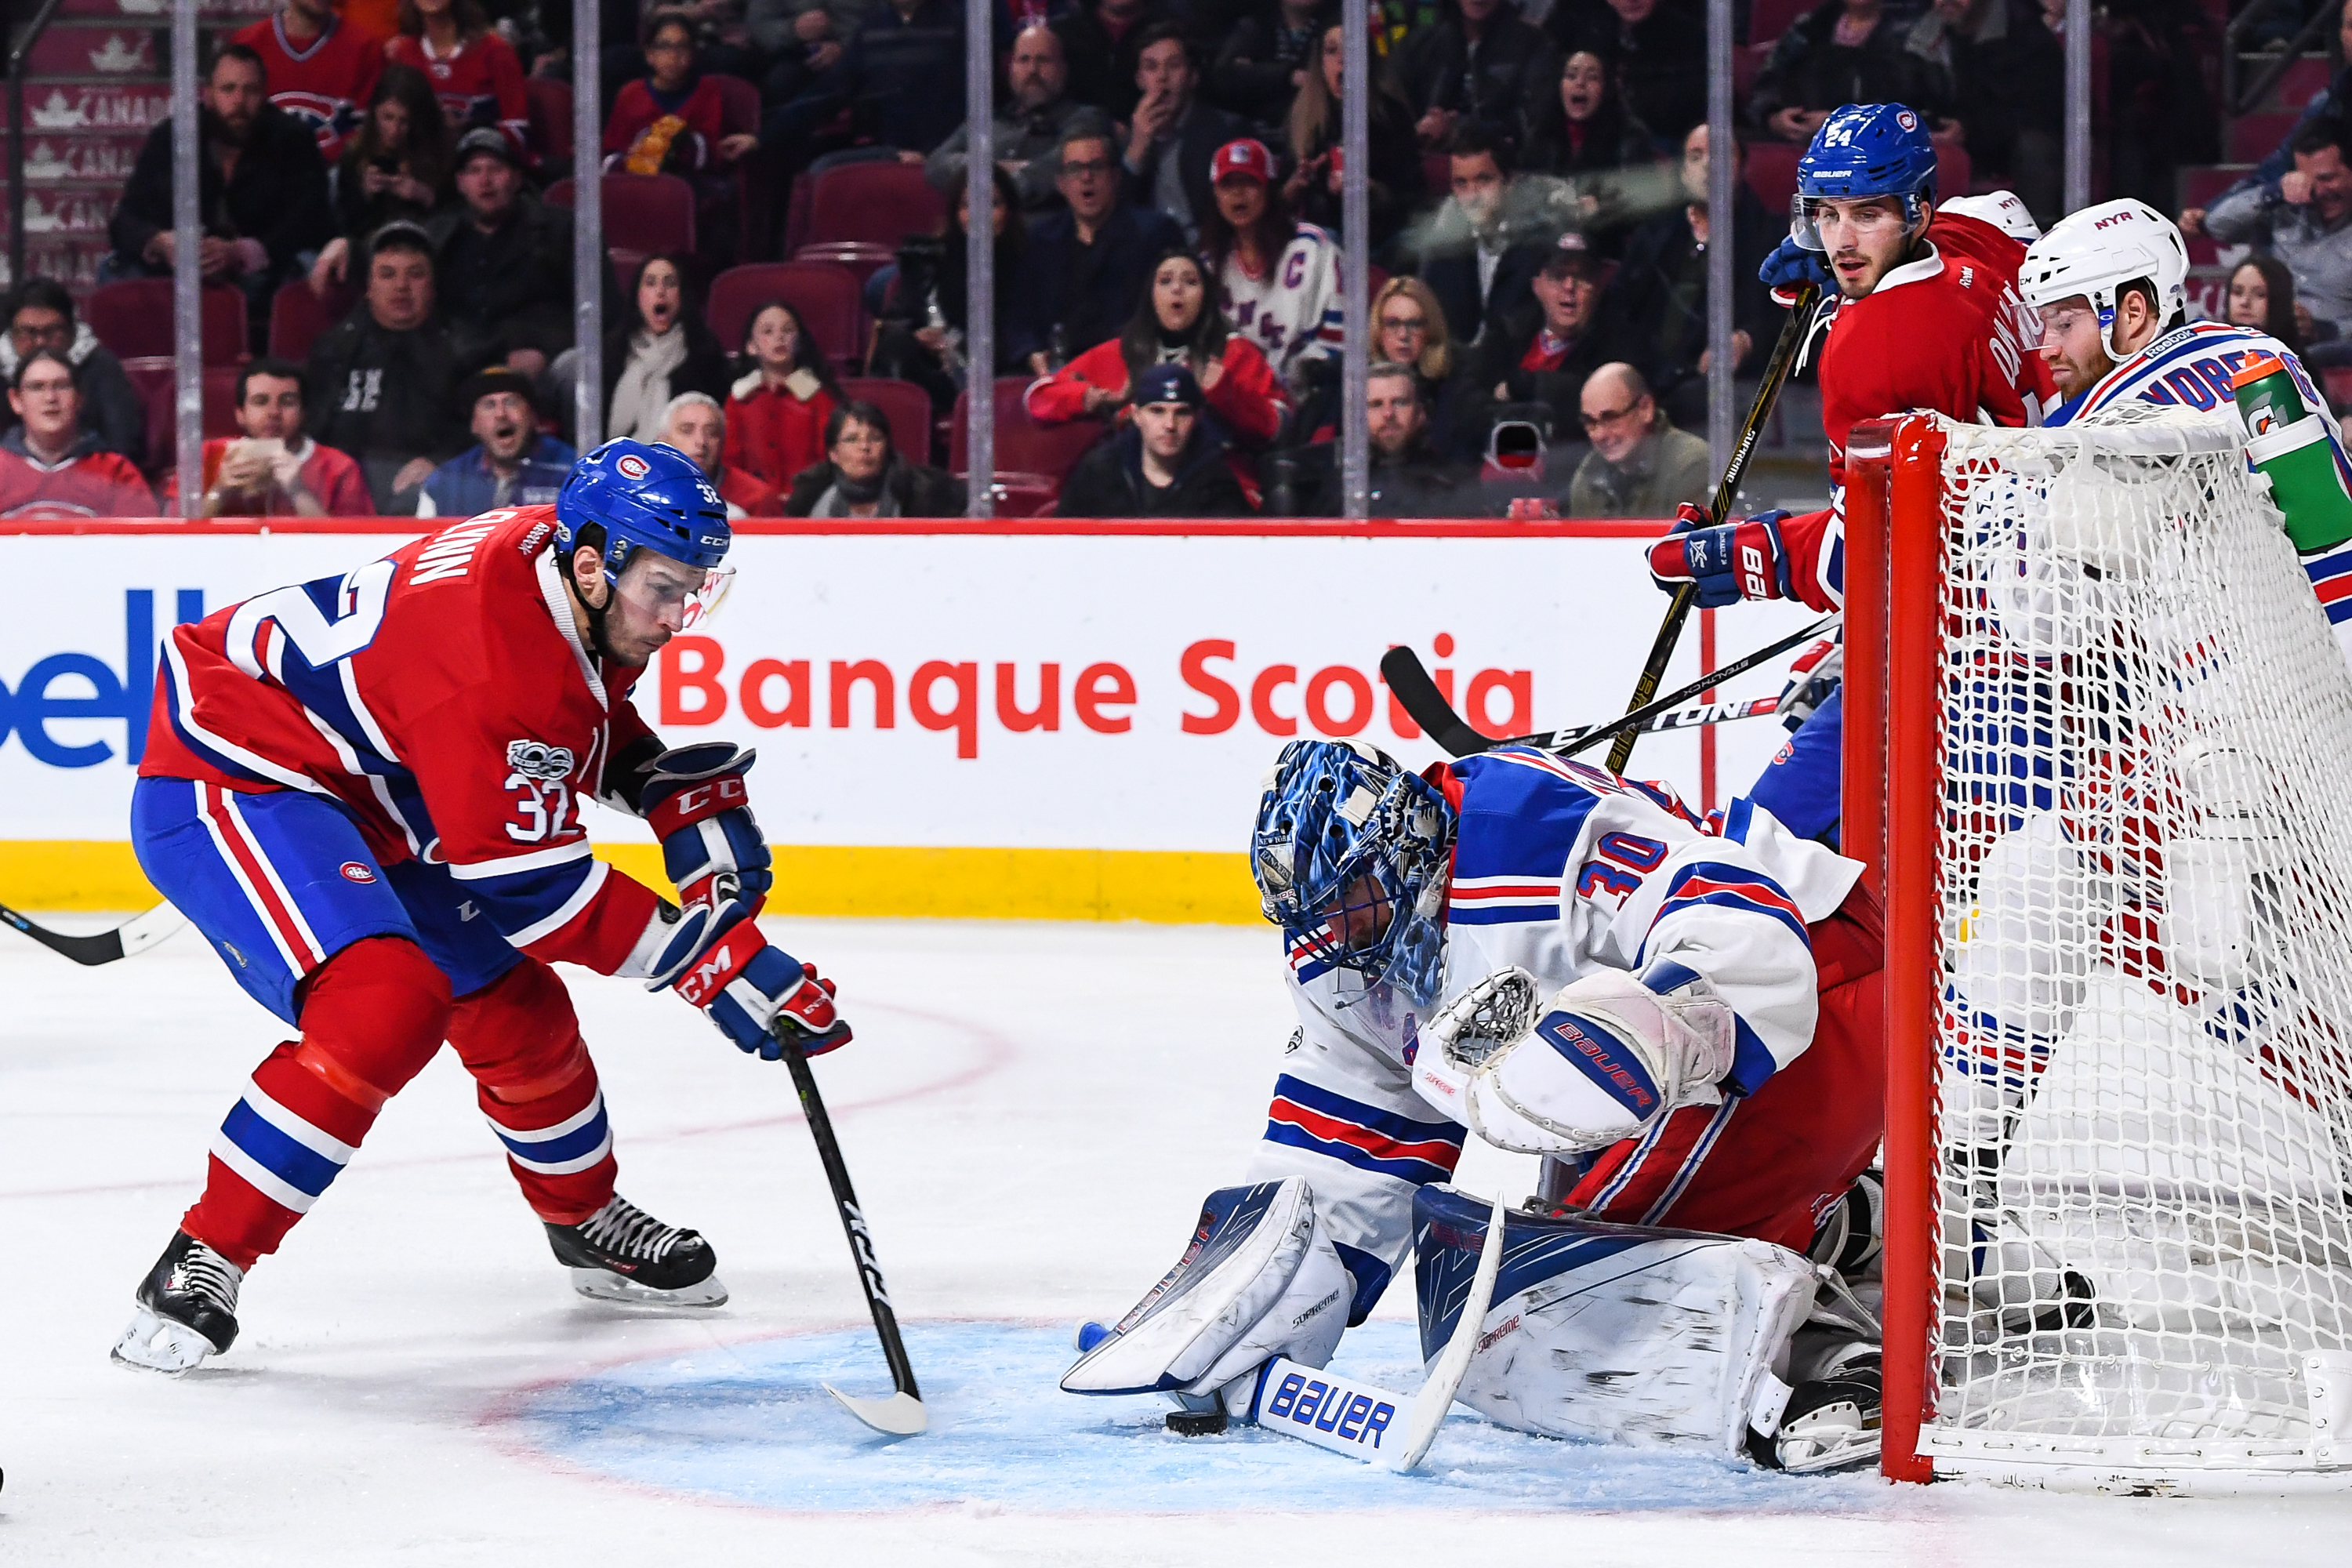 MONTREAL, QC - JANUARY 14:  Brian Flynn #32 of the Montreal Canadiens skates towards goaltender Henrik Lundqvist #30 of the New York Rangers during the NHL game at the Bell Centre on January 14, 2017 in Montreal, Quebec, Canada.  The Montreal Canadiens defeated the New York Rangers 5-4.  (Photo by Minas Panagiotakis/Getty Images)